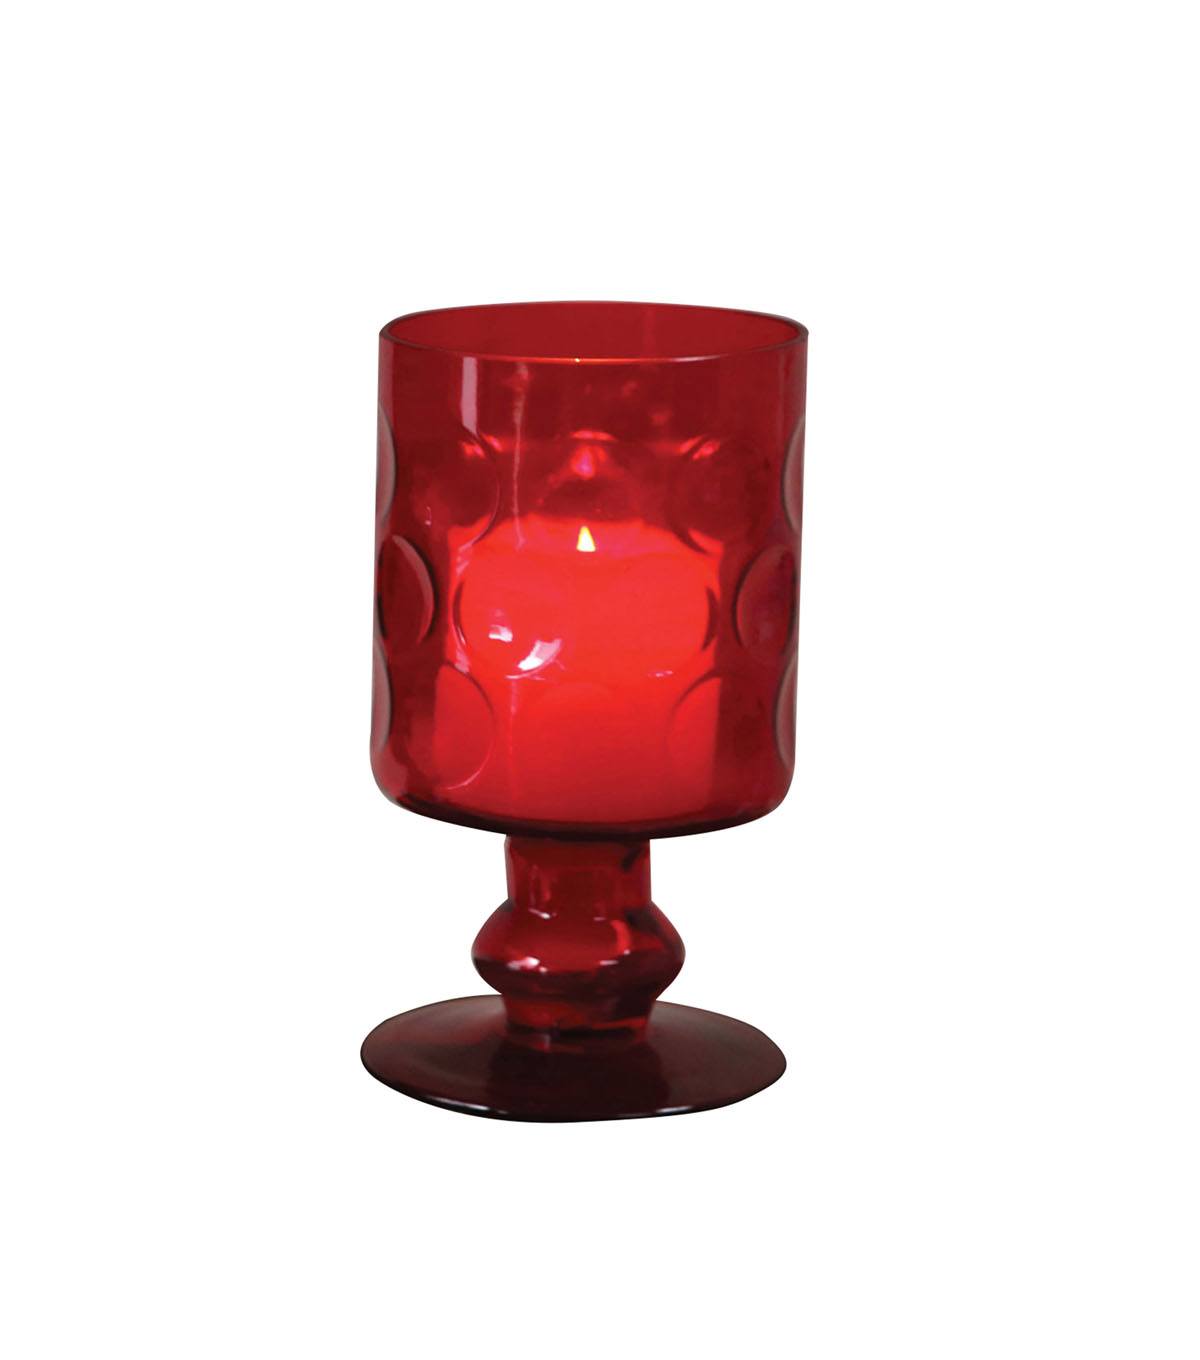 3R Studios Christmas Glass Footed Hurricane Pillar Candle Holder-Red